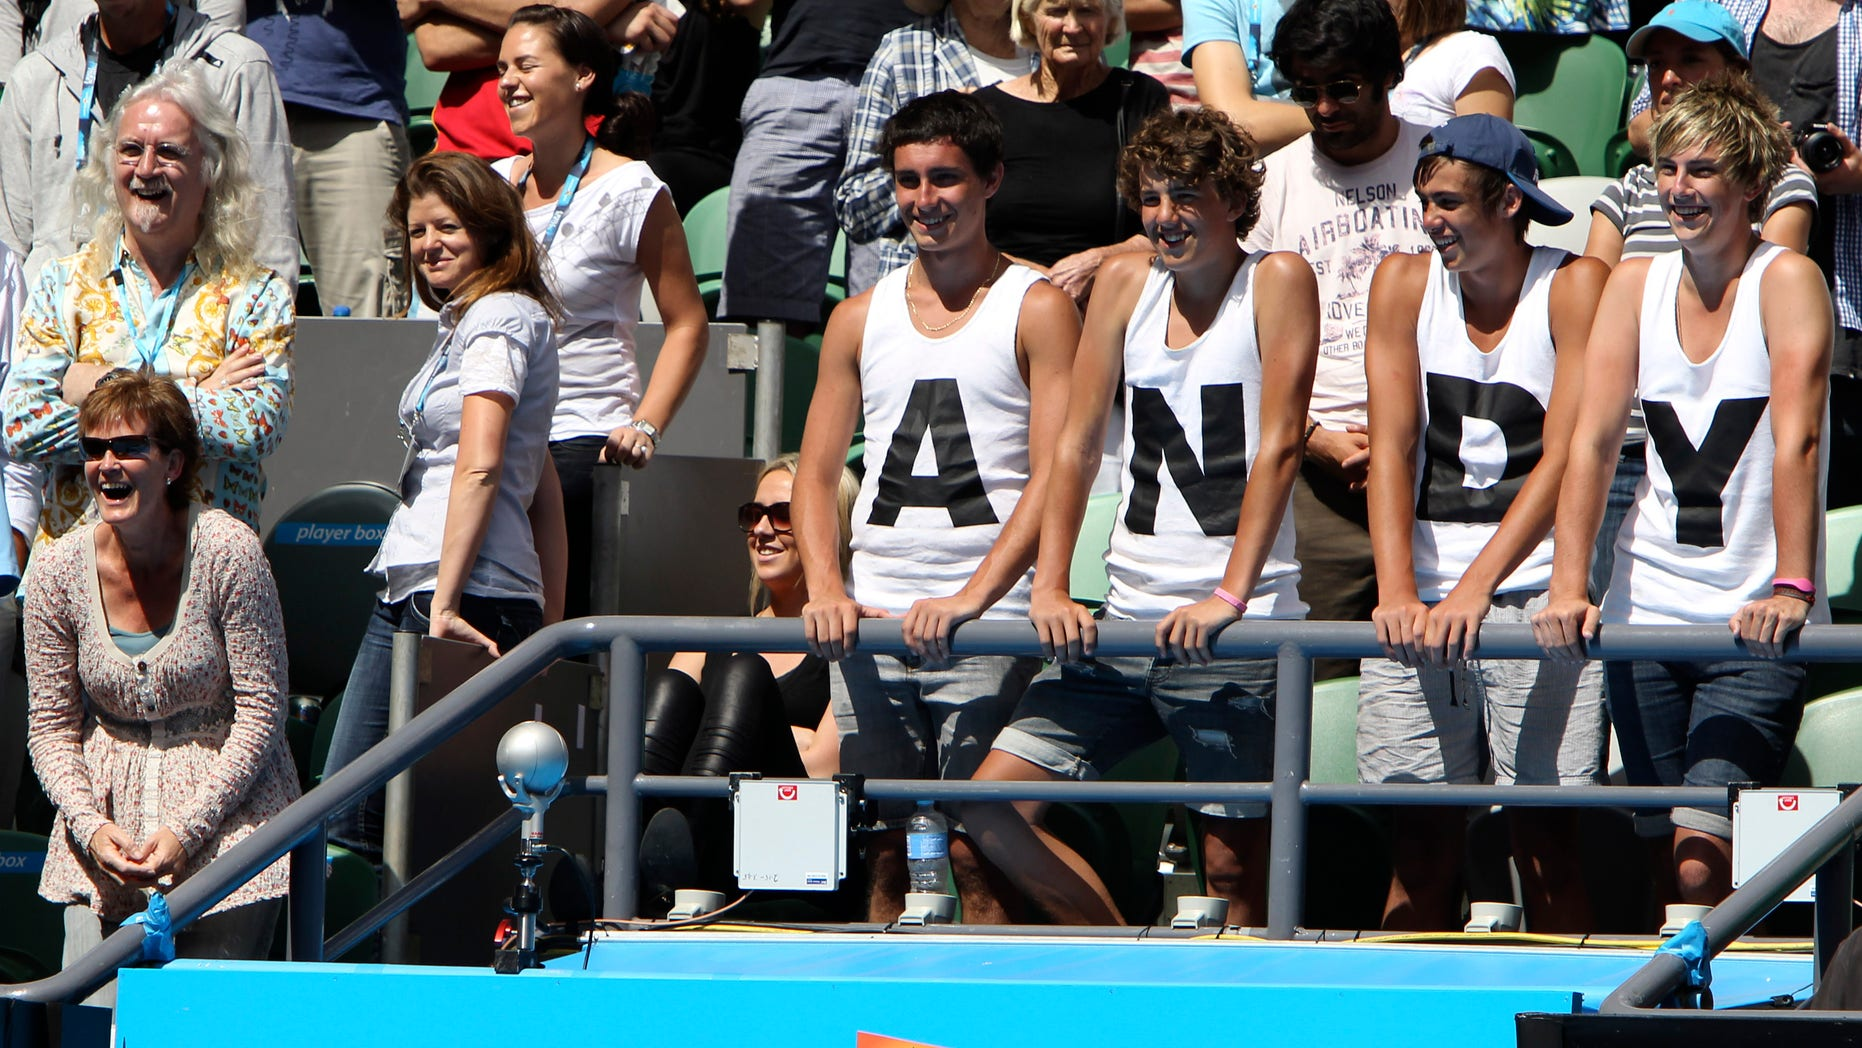 Jan. 24: Scottish comedian Billy Connolly, top left, and Judy Murray, bottom left, stand with supporters of Britain's Andy Murray as he is interviewed after beating Austria's Jurgen Melzer in the fourth round match at the Australian Open tennis championships in Melbourne, Australia.